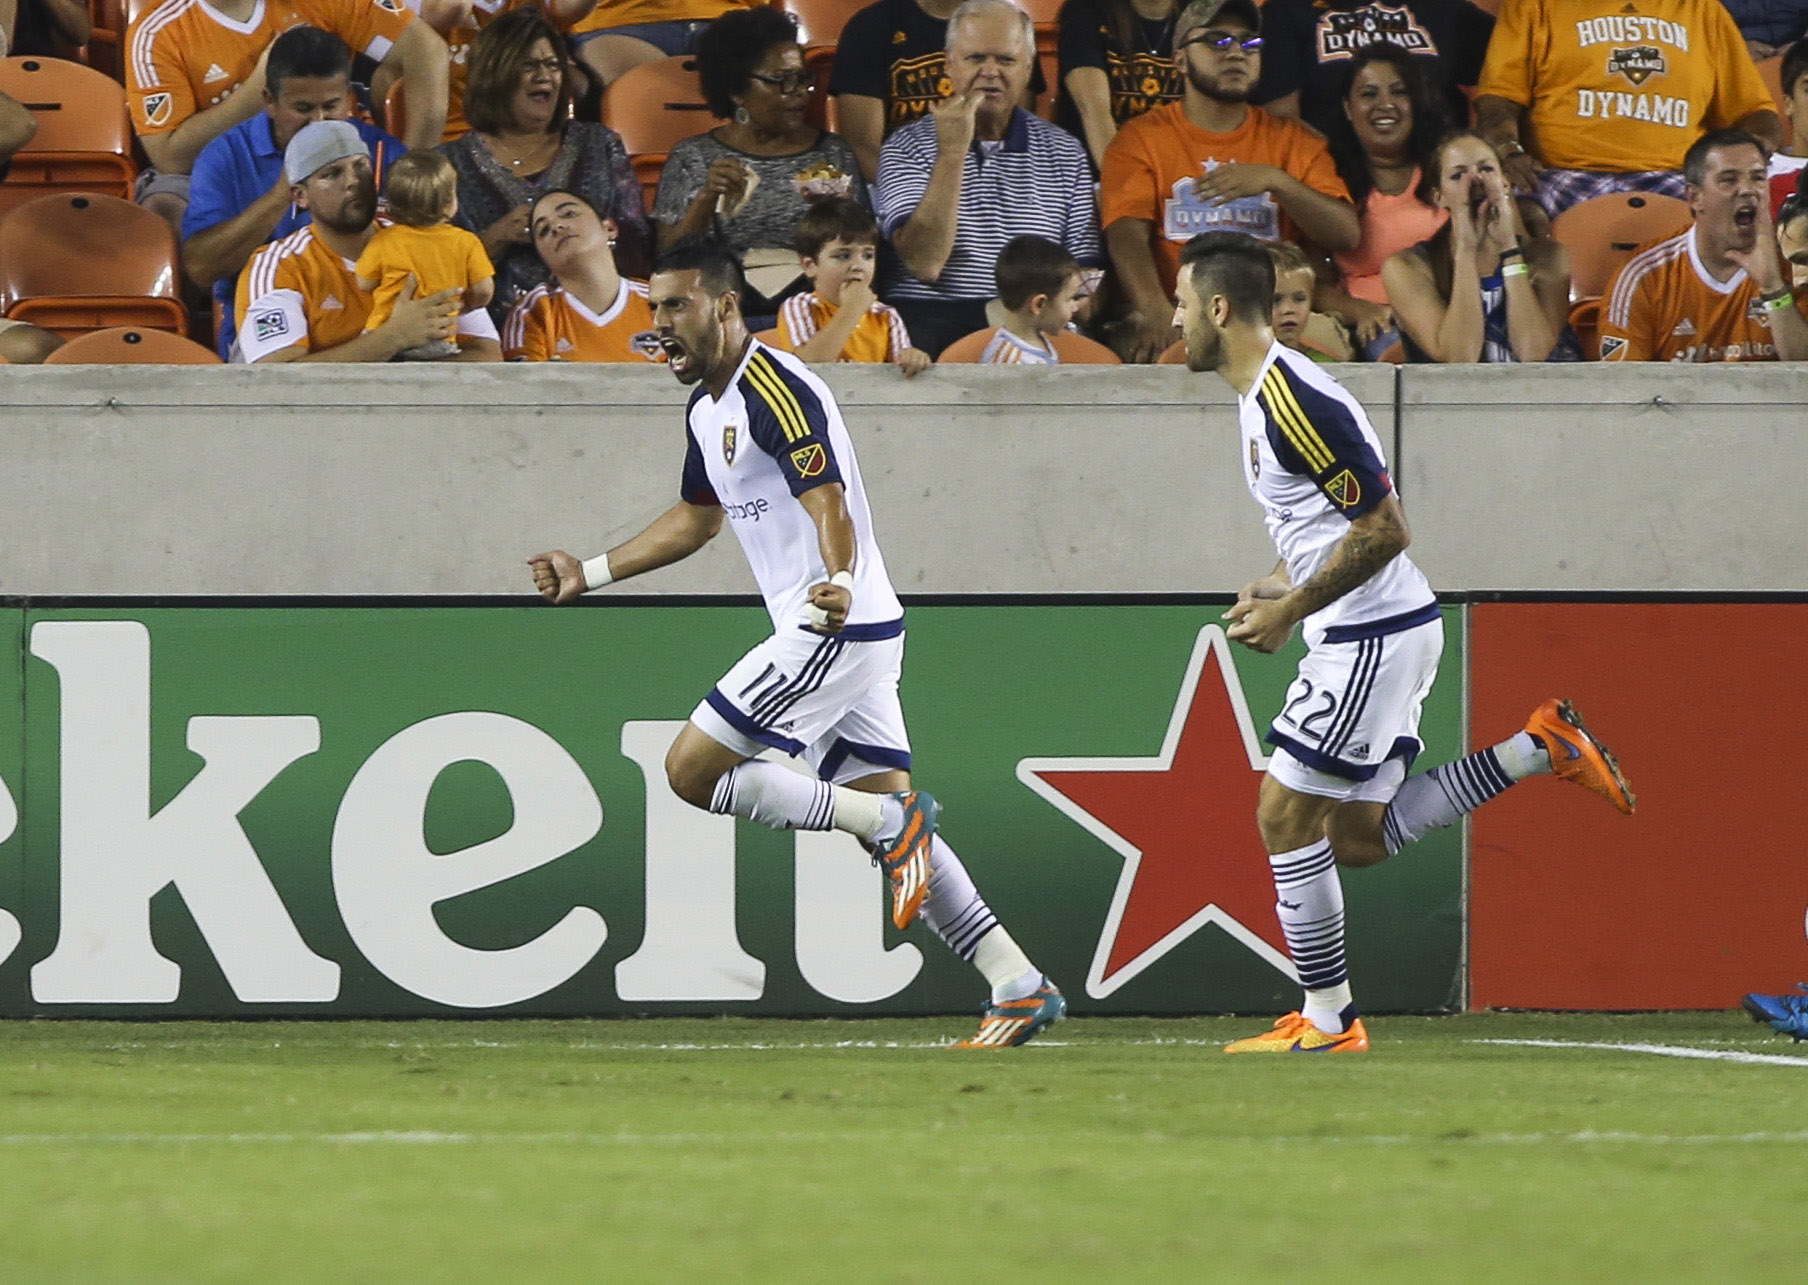 Javier Morales (11) scored RSL's first goal against the Dynamo.